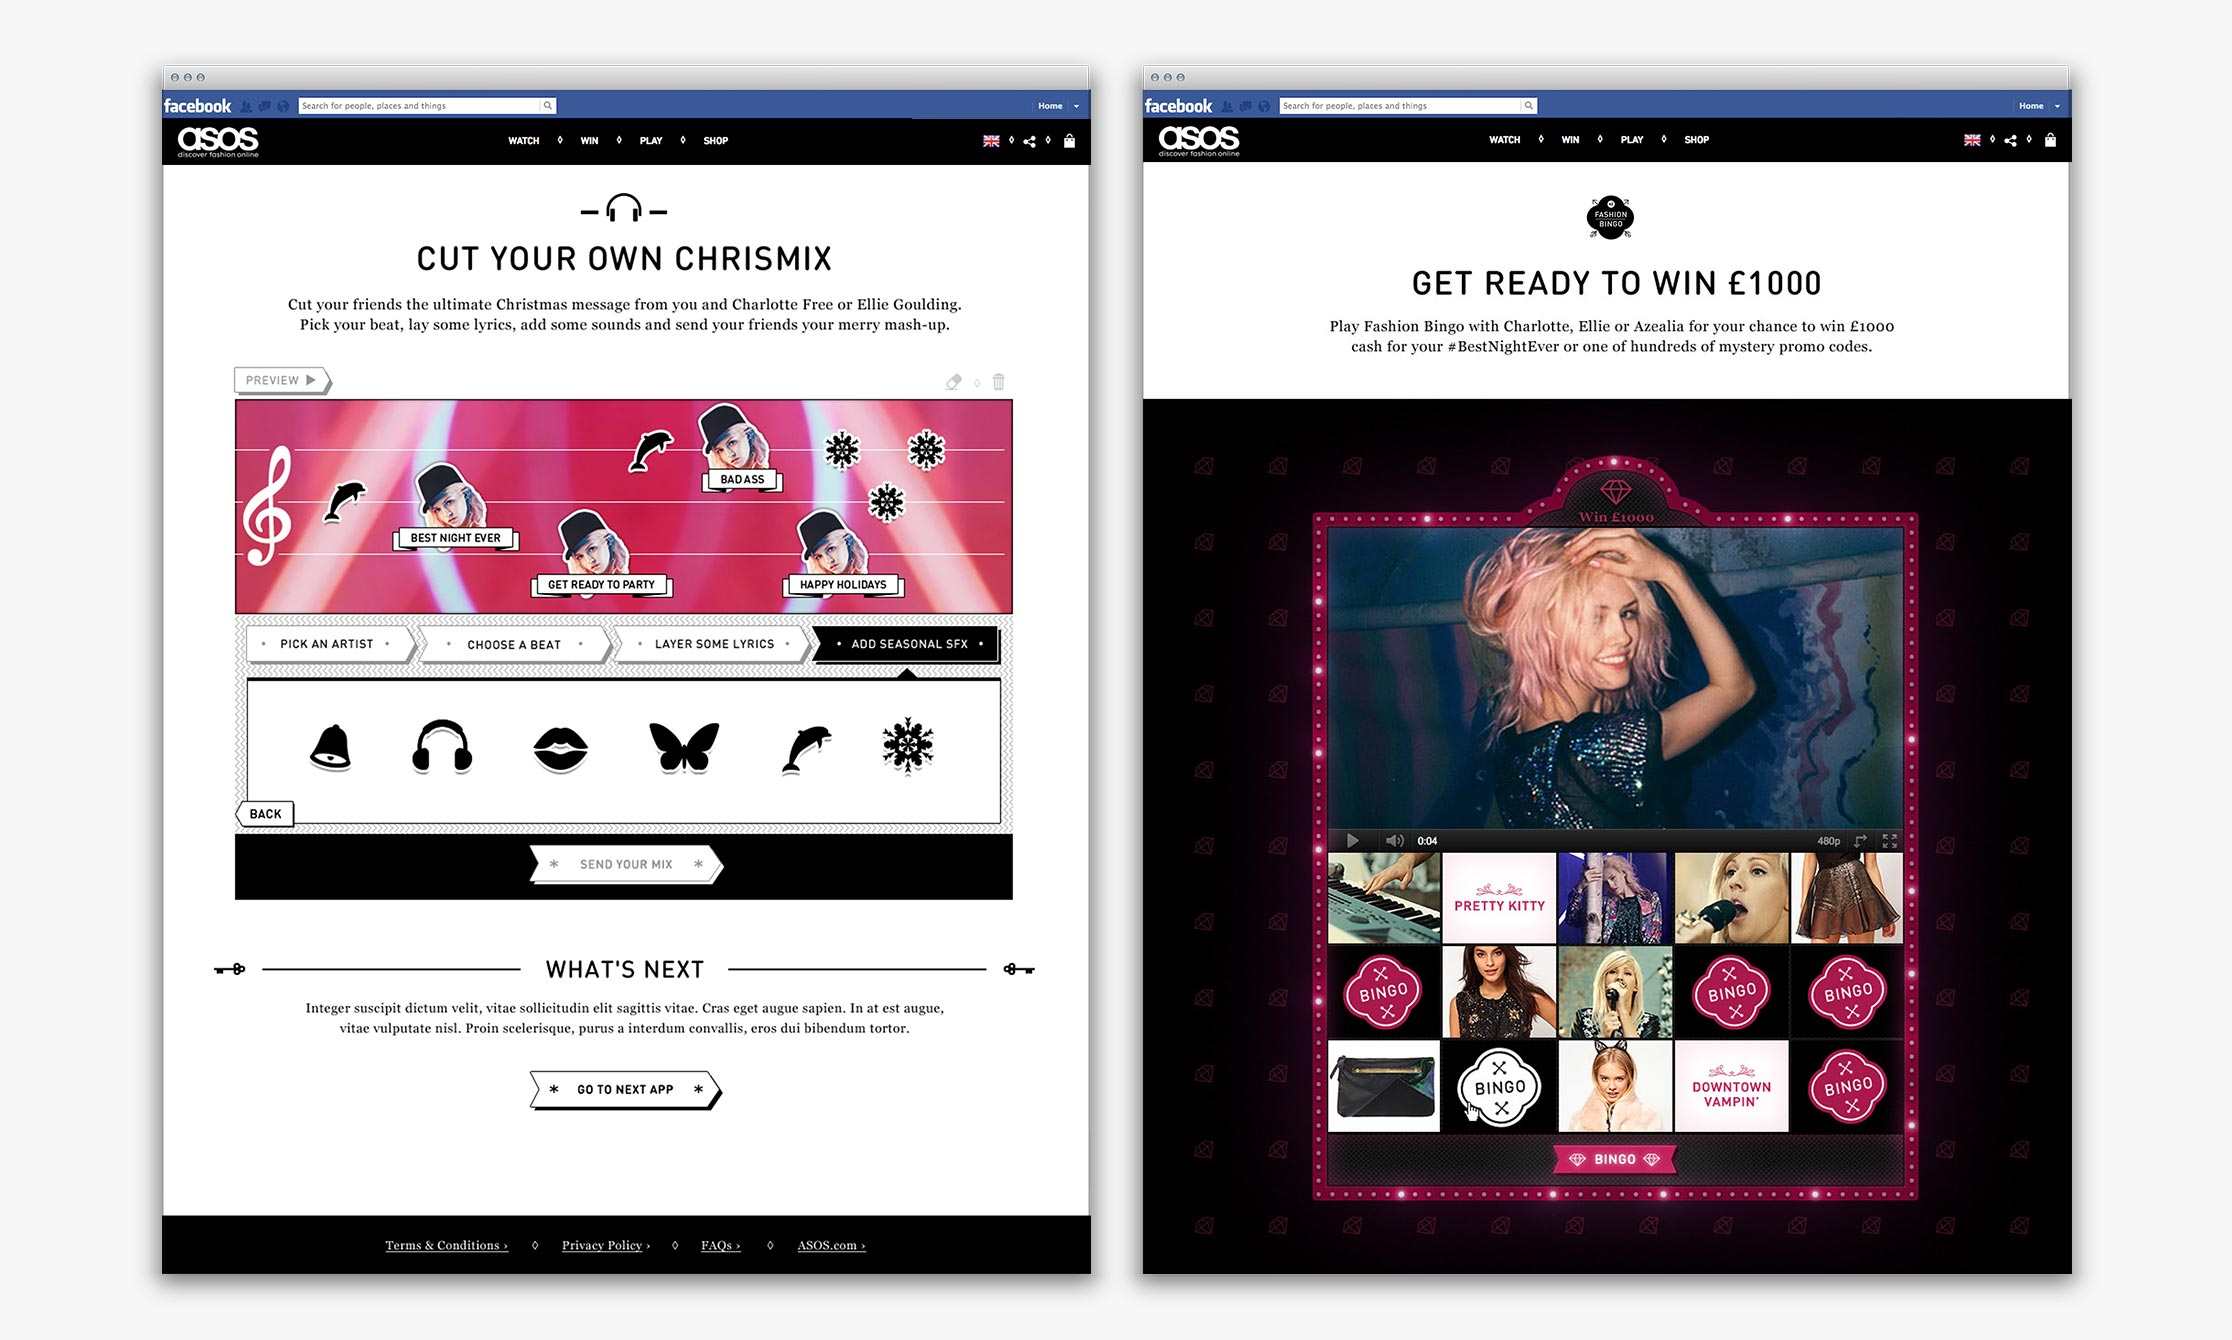 ASOS Womenswear #BestNightEver Facebook hub – Chrismix and Fashion Bingo games